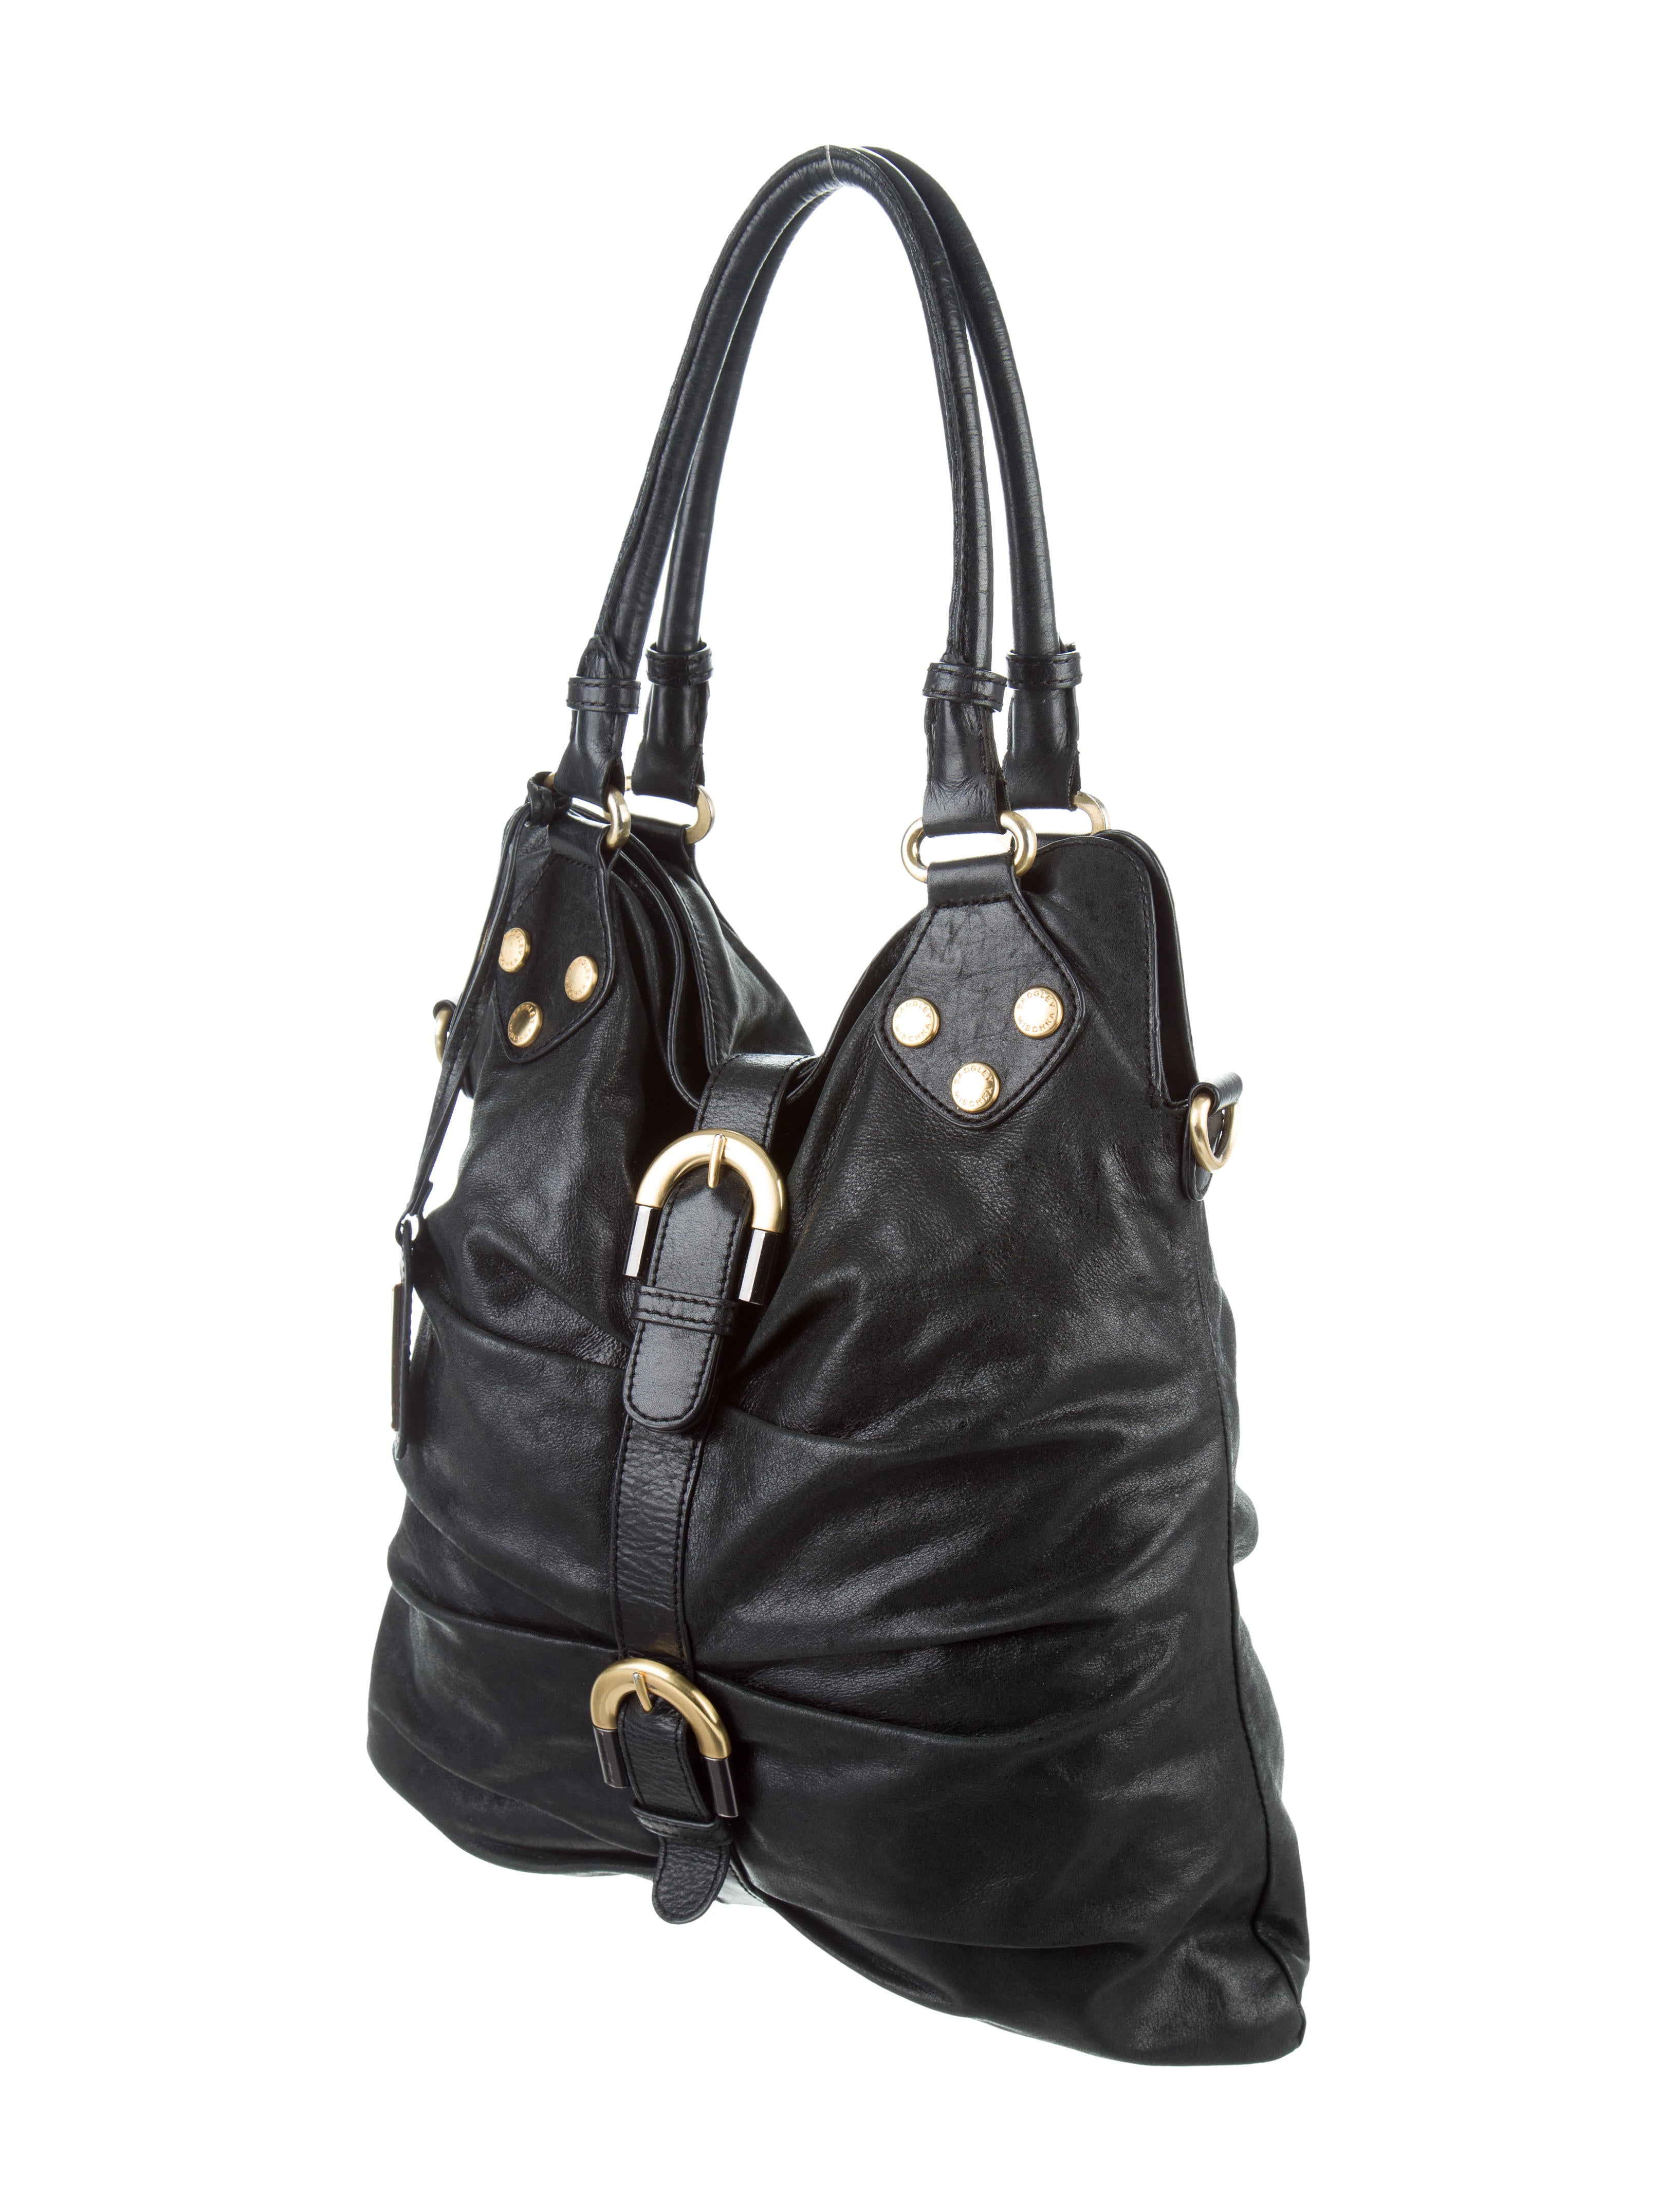 Badgley Mischka Platinum Label Carina Leather Hobo - PurseBlog